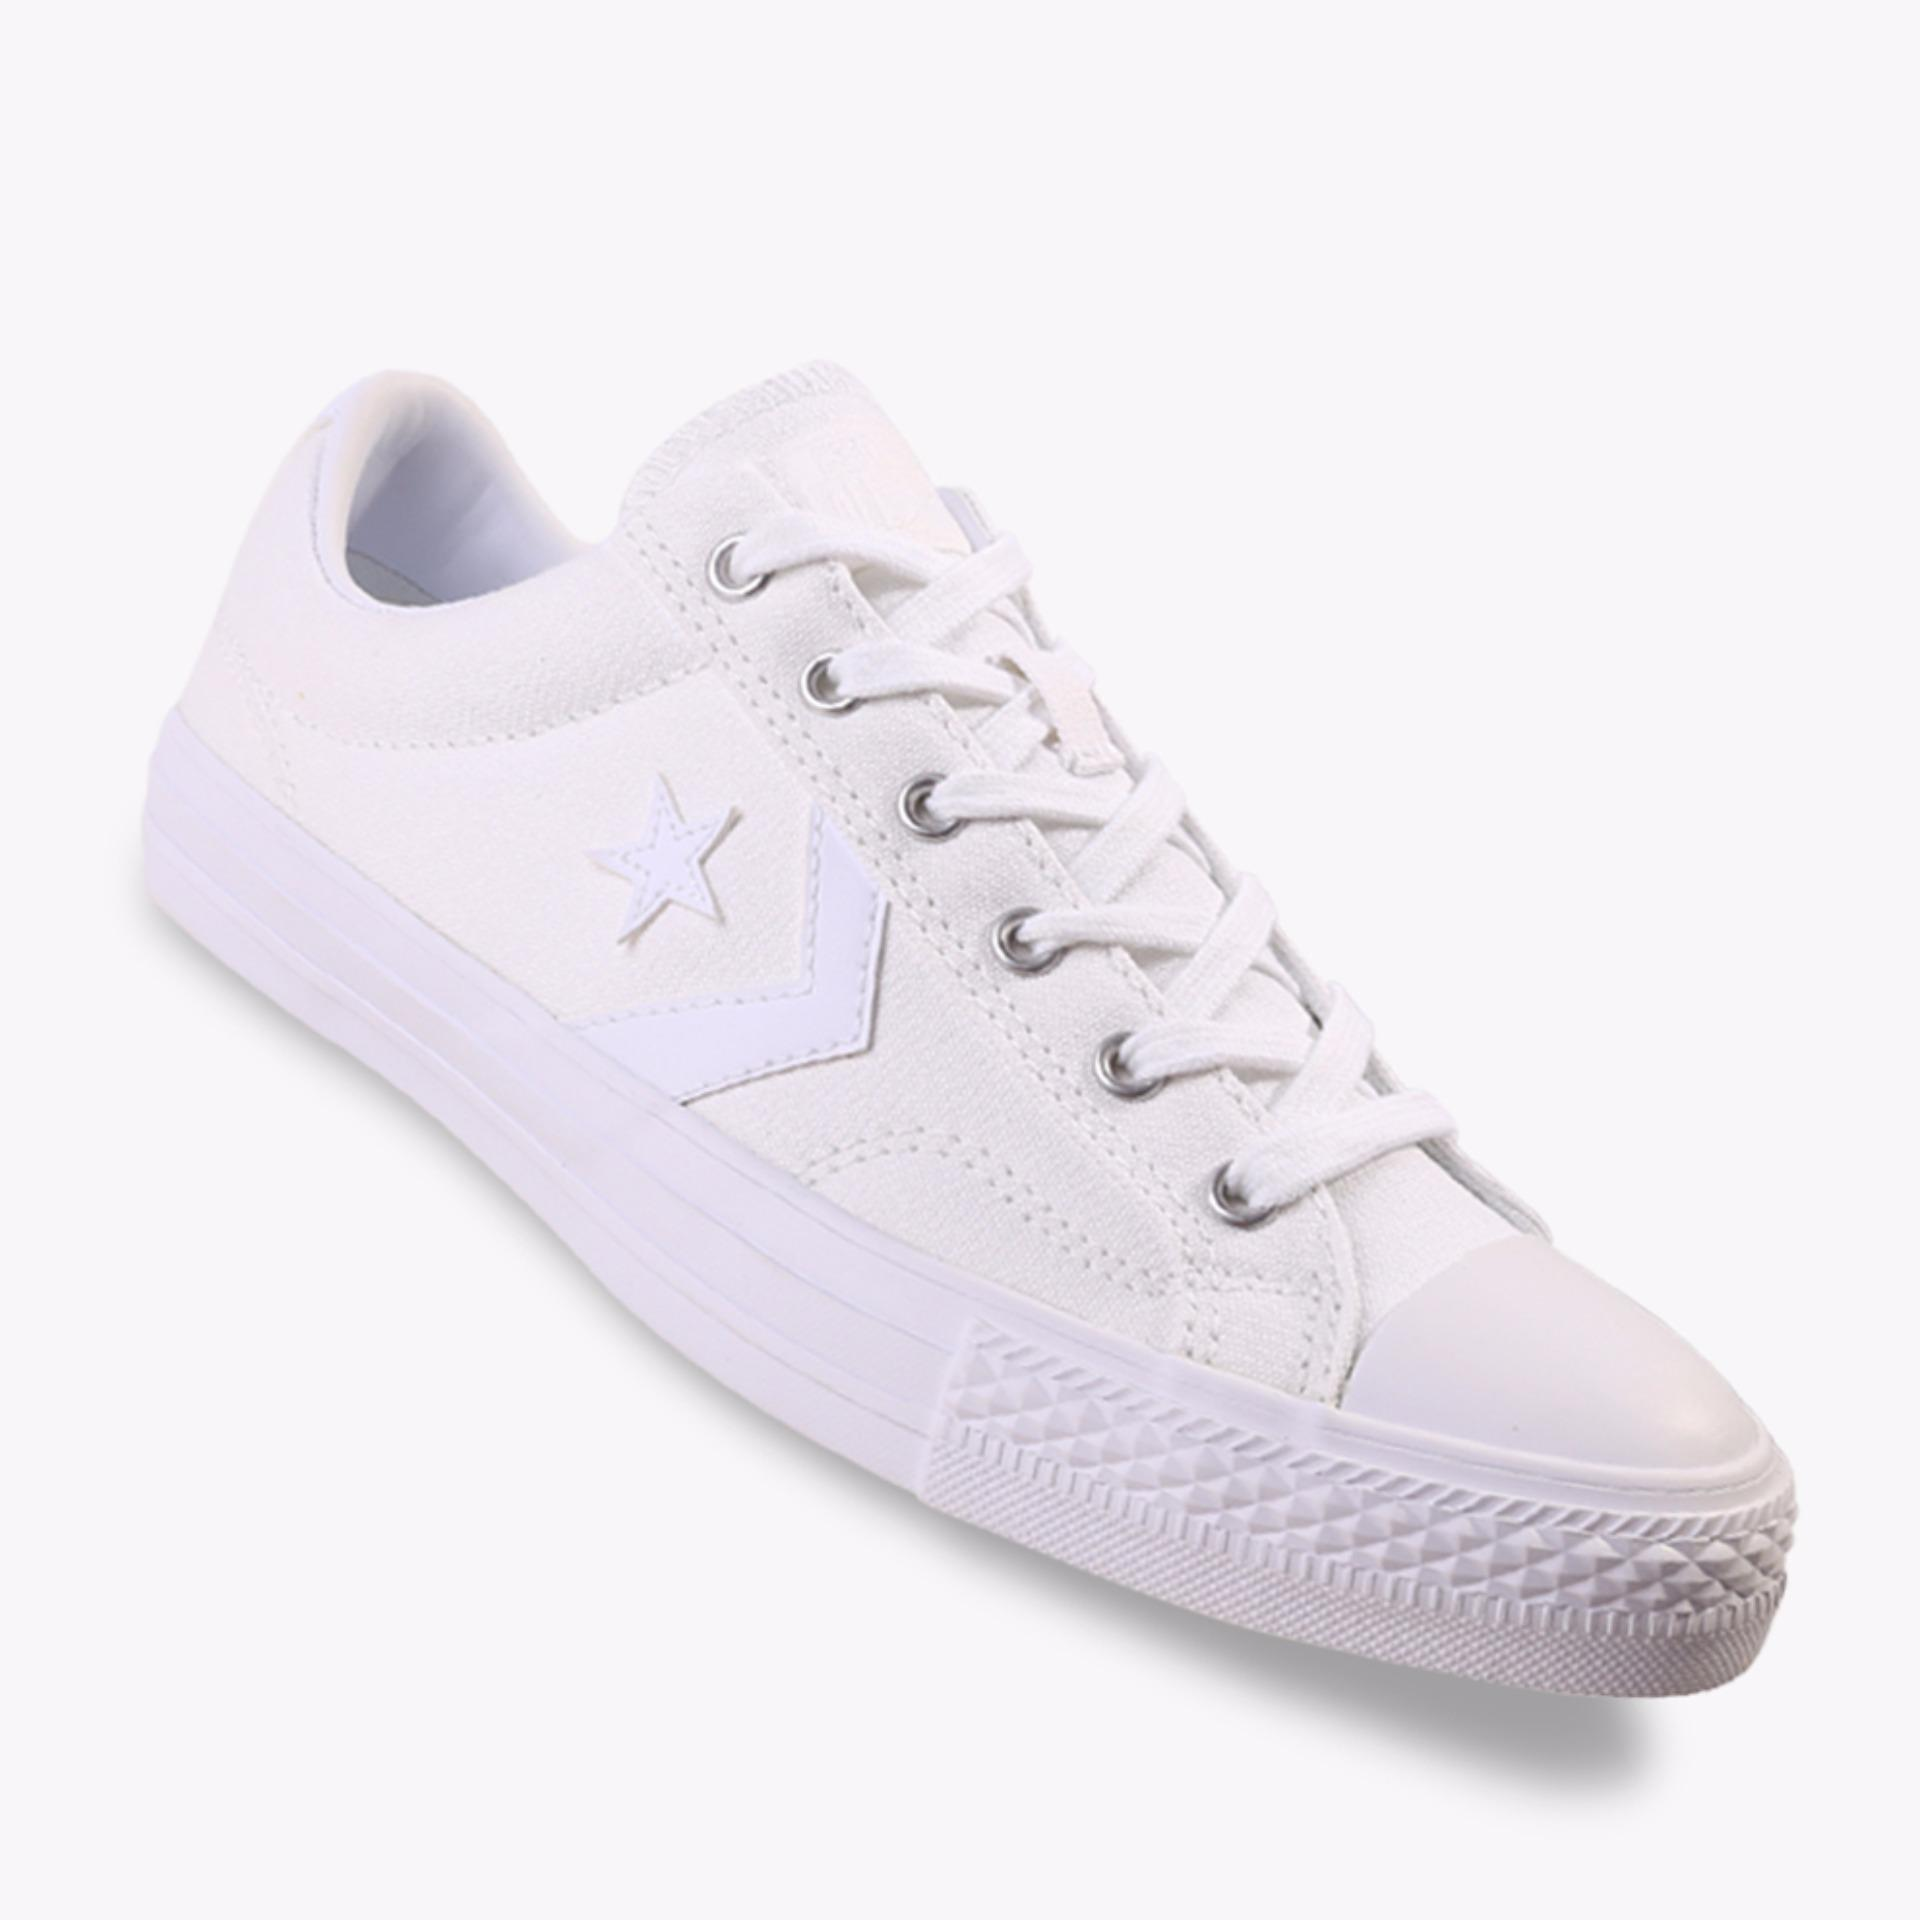 Kualitas Converse Star Player Ox Men S Sneakers Shoes Putih Converse